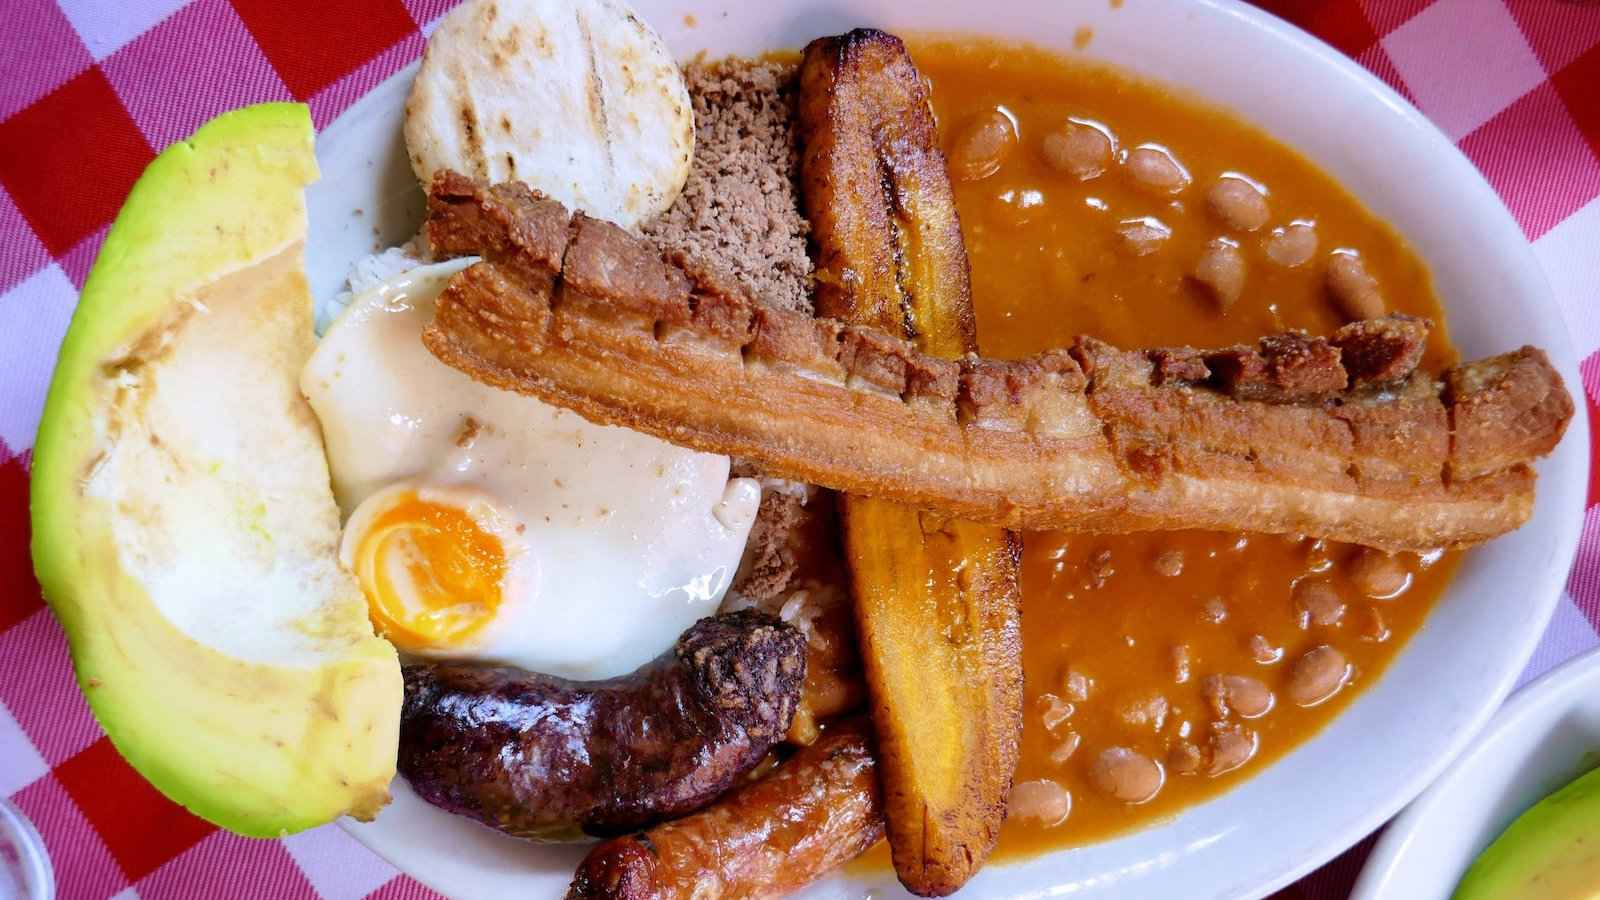 A Colombian Bandeja Paisa is a big plate of food meant to provide energy for an entire day